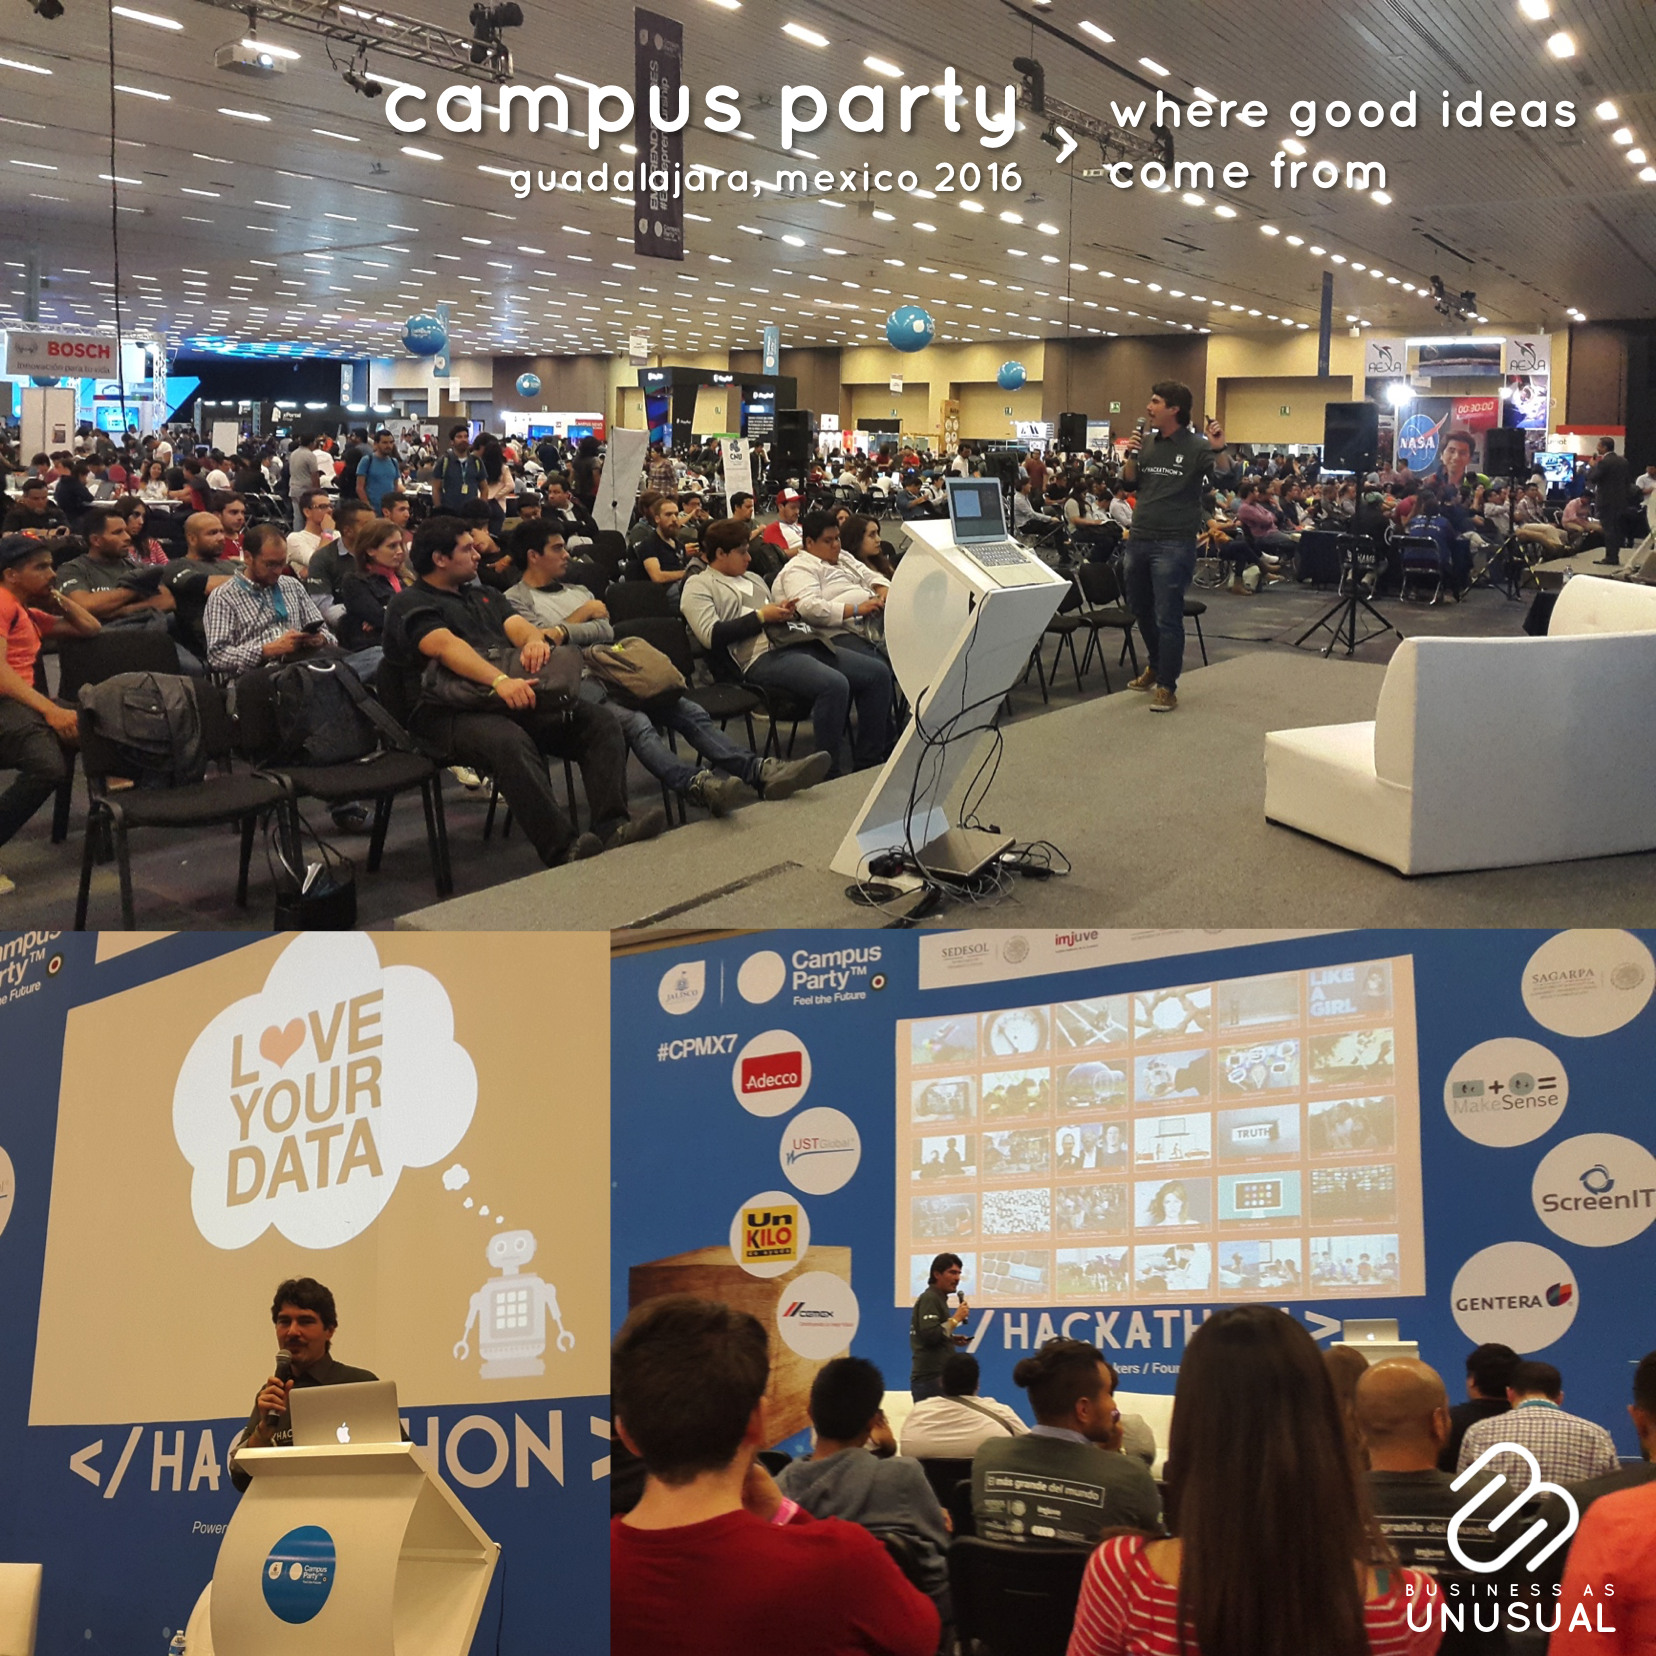 Campus Party - Where Good Ideas Come From